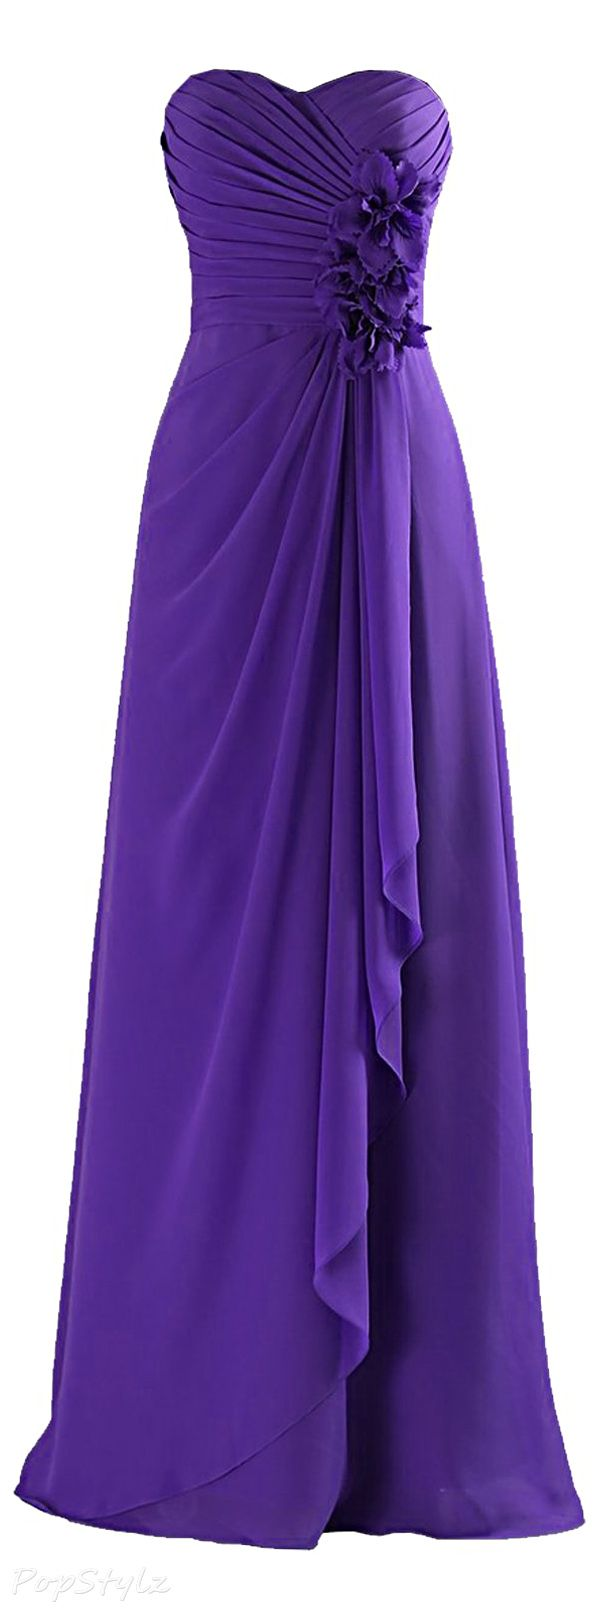 Sunvary Long Chiffon Formal Evening Gown